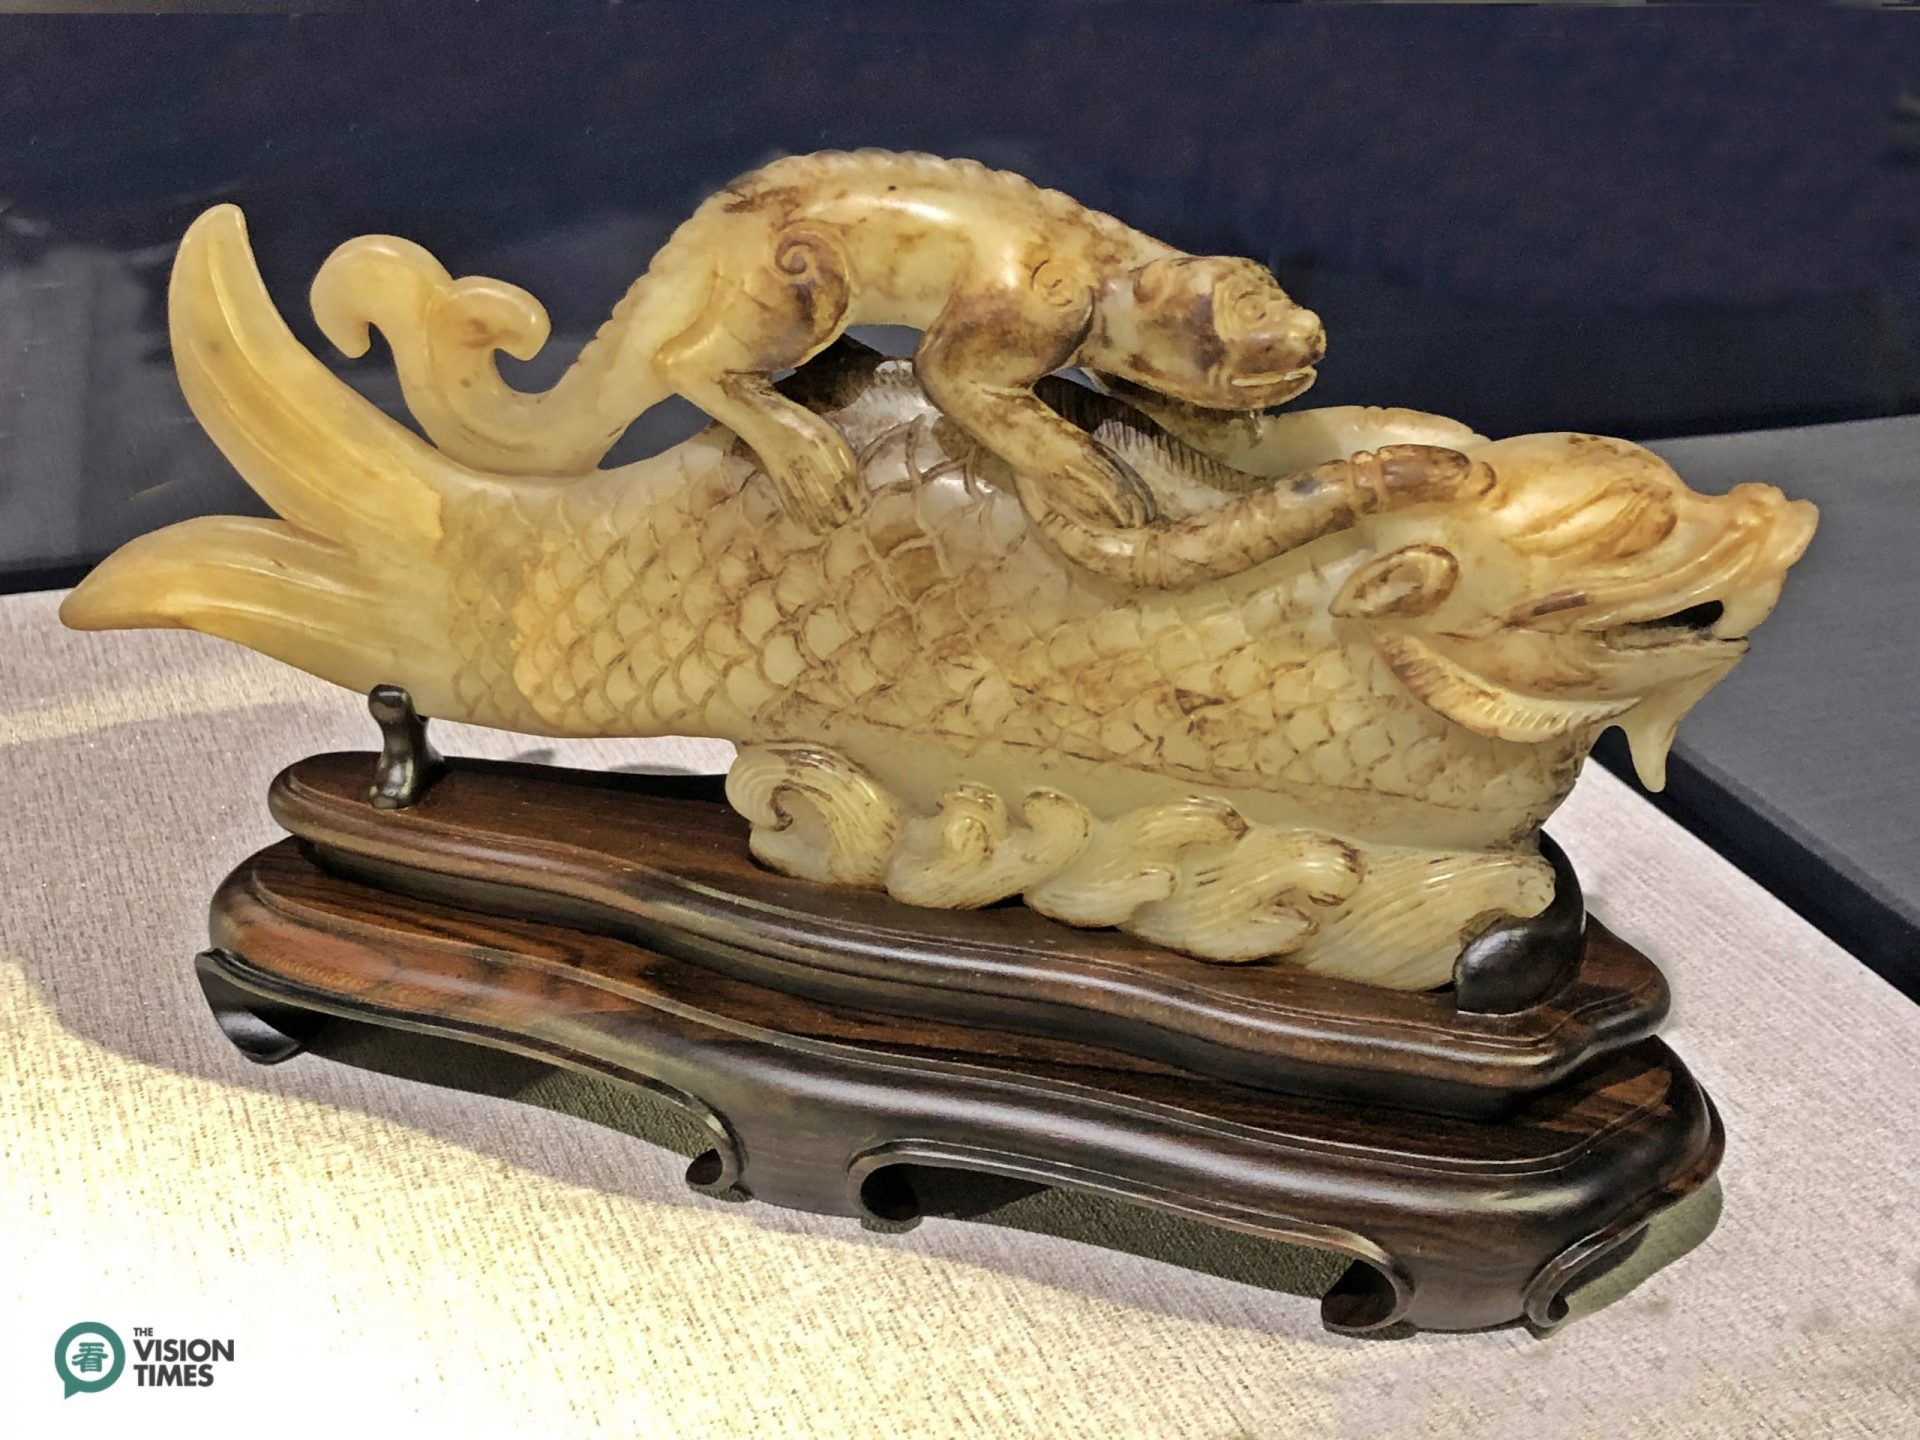 A fish jade piece from the Qing Dynasty is exhibited at the Commemorative Fish Jade Exhibition. (Image: Billy Shyu / Vision Times)